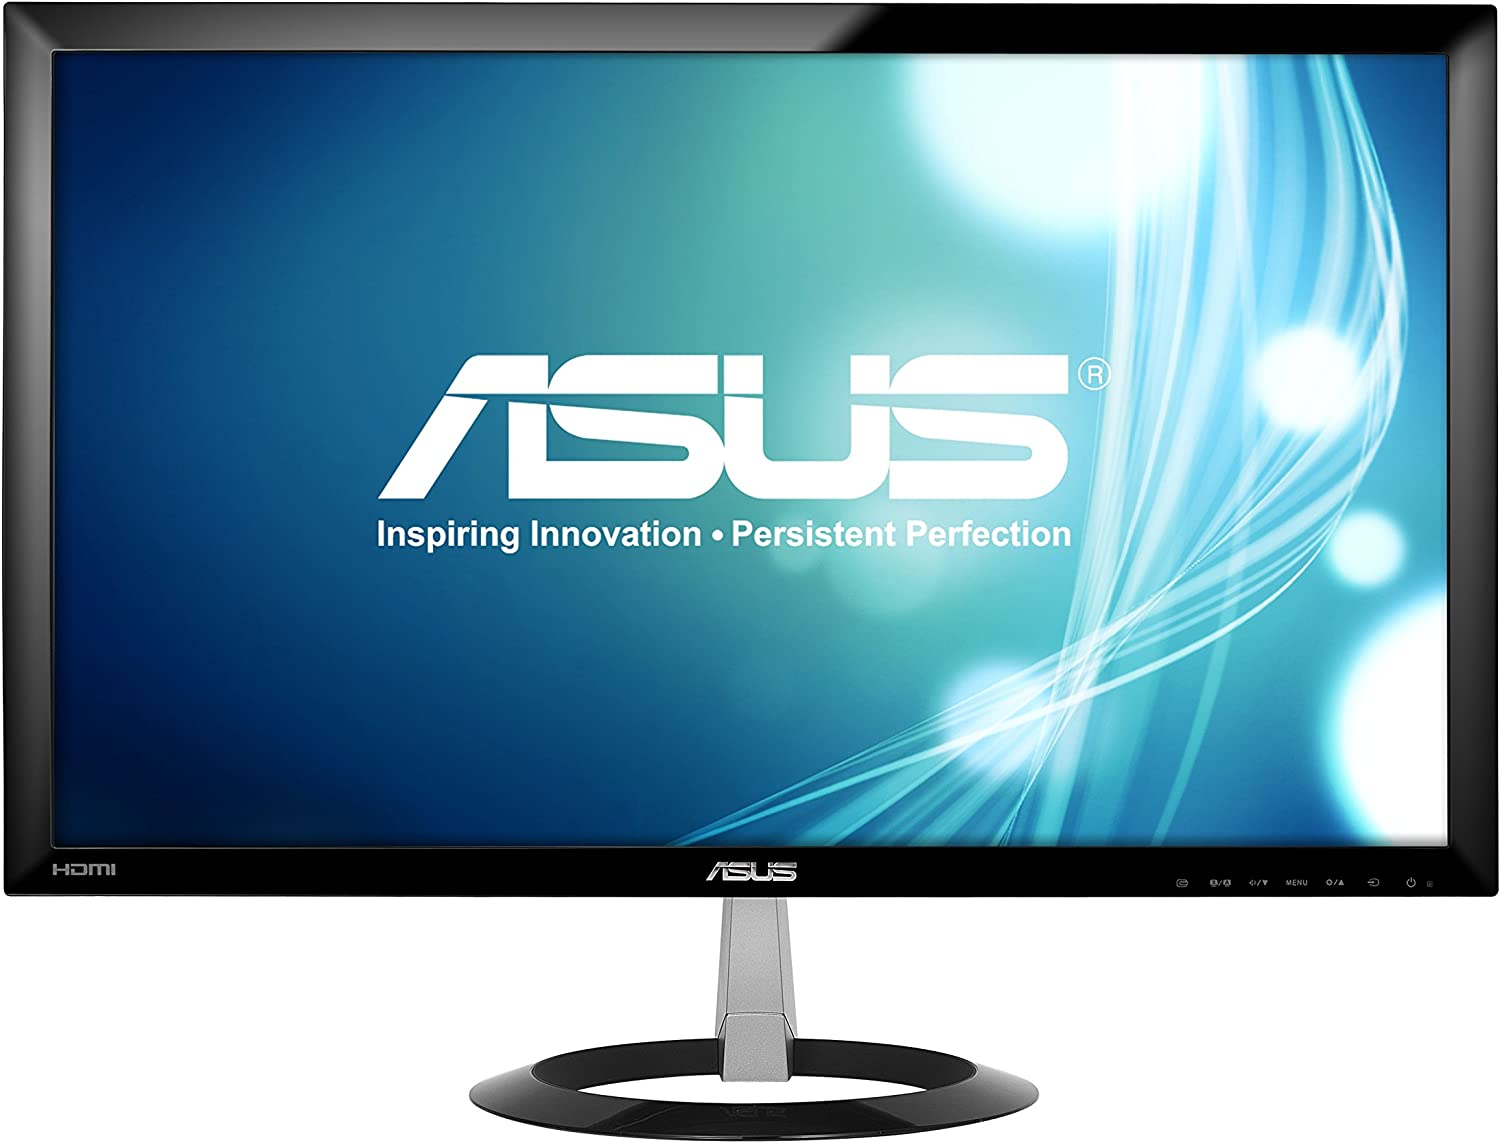 ASUS Free shipping 23-inch Full HD Wide-Screen 1080p VX238H Max 76% OFF Gaming Monitor